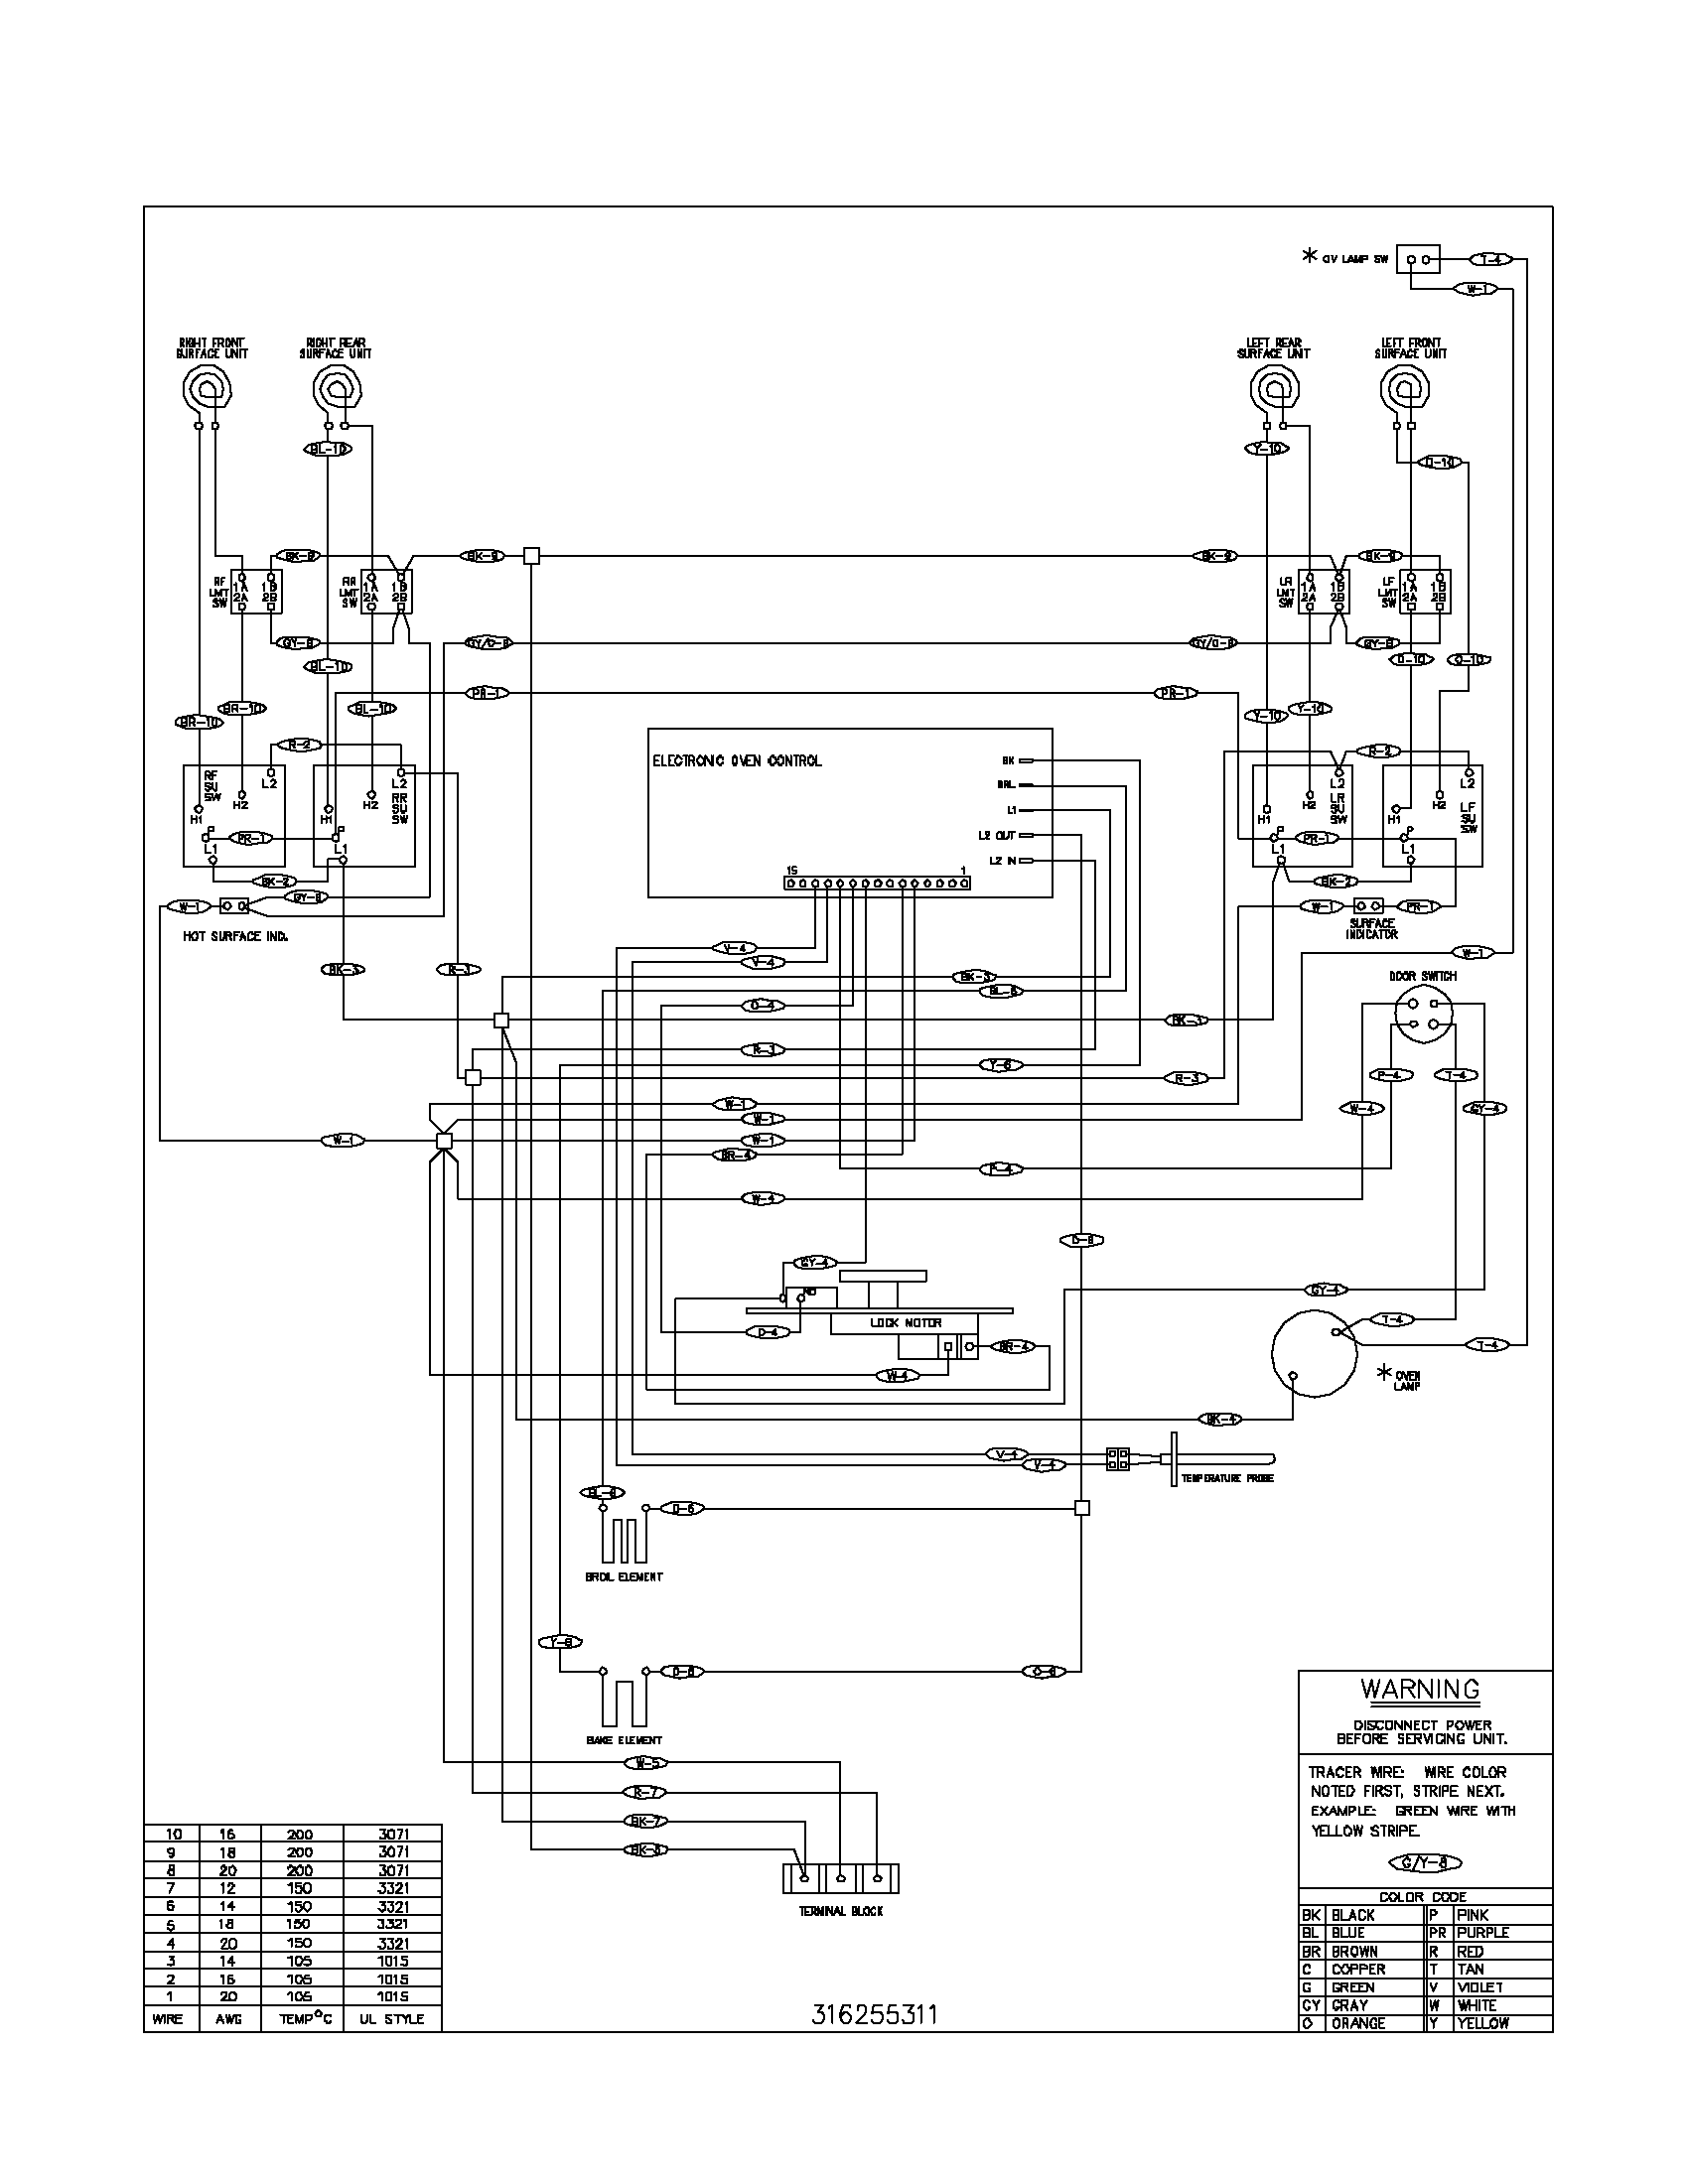 wiring diagram parts frigidaire fef366ccb electric range timer stove clocks and viking range wiring diagram at fashall.co